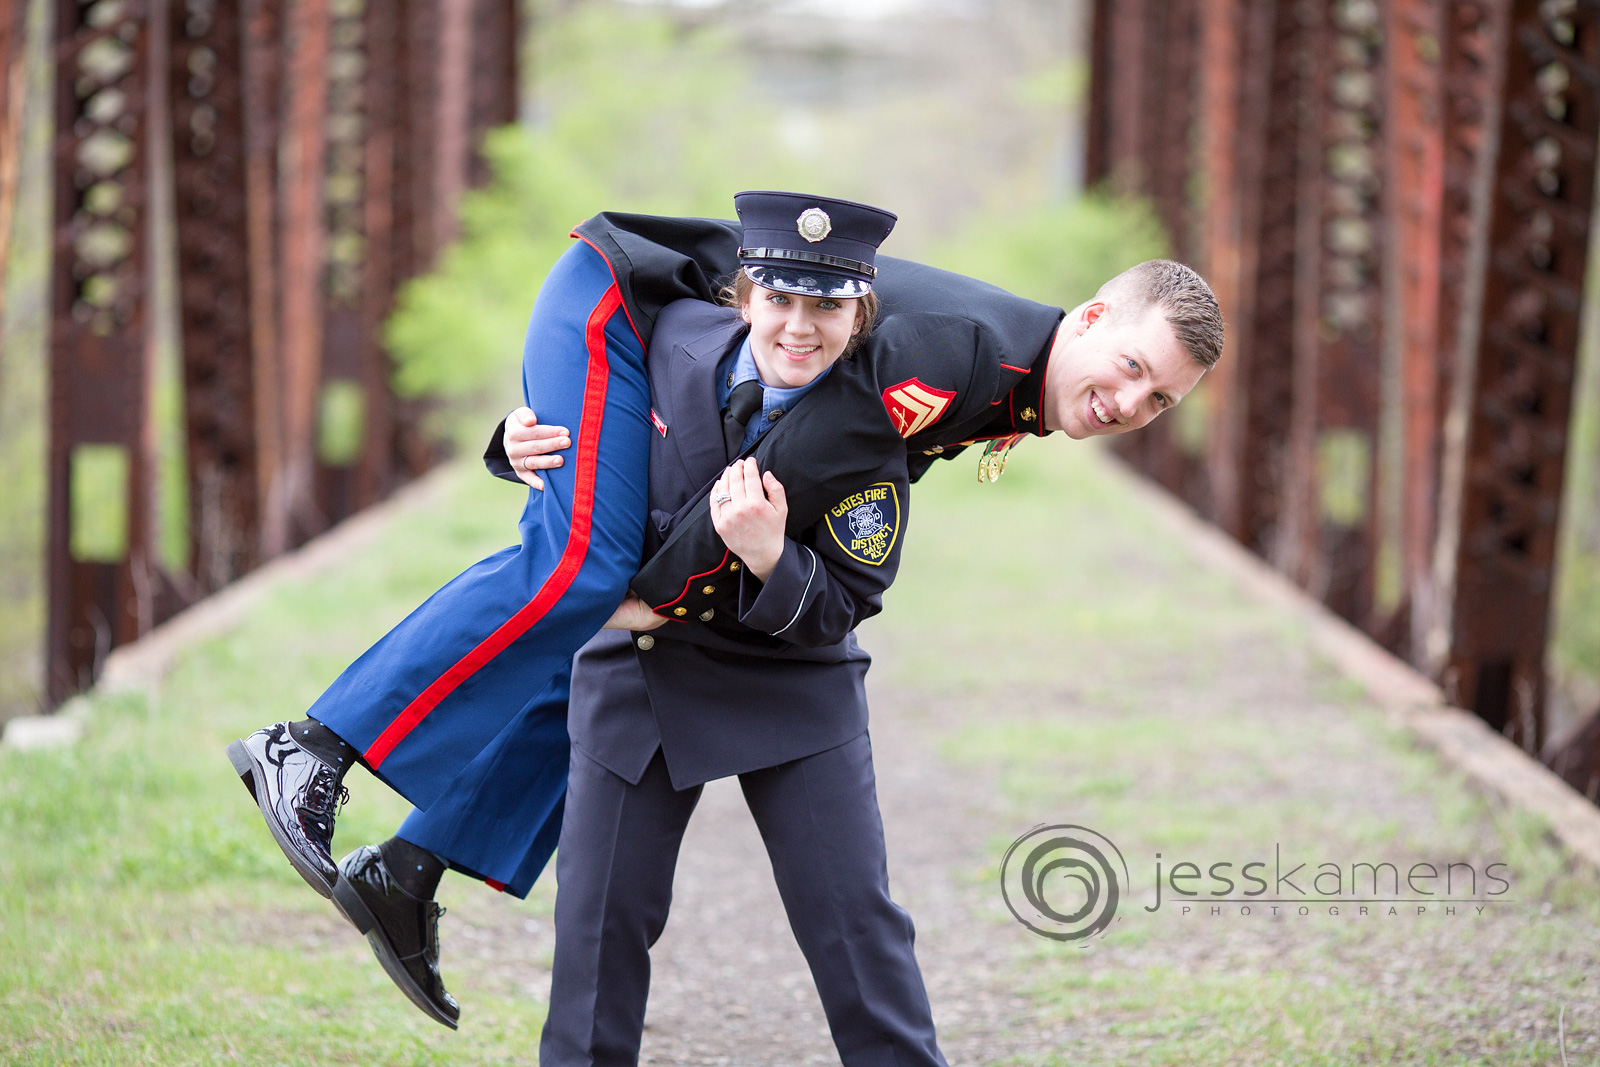 wedding photographers in rochester ny love to use unique bridges and such to capture images like this firefighter holding her marine fiance on her back